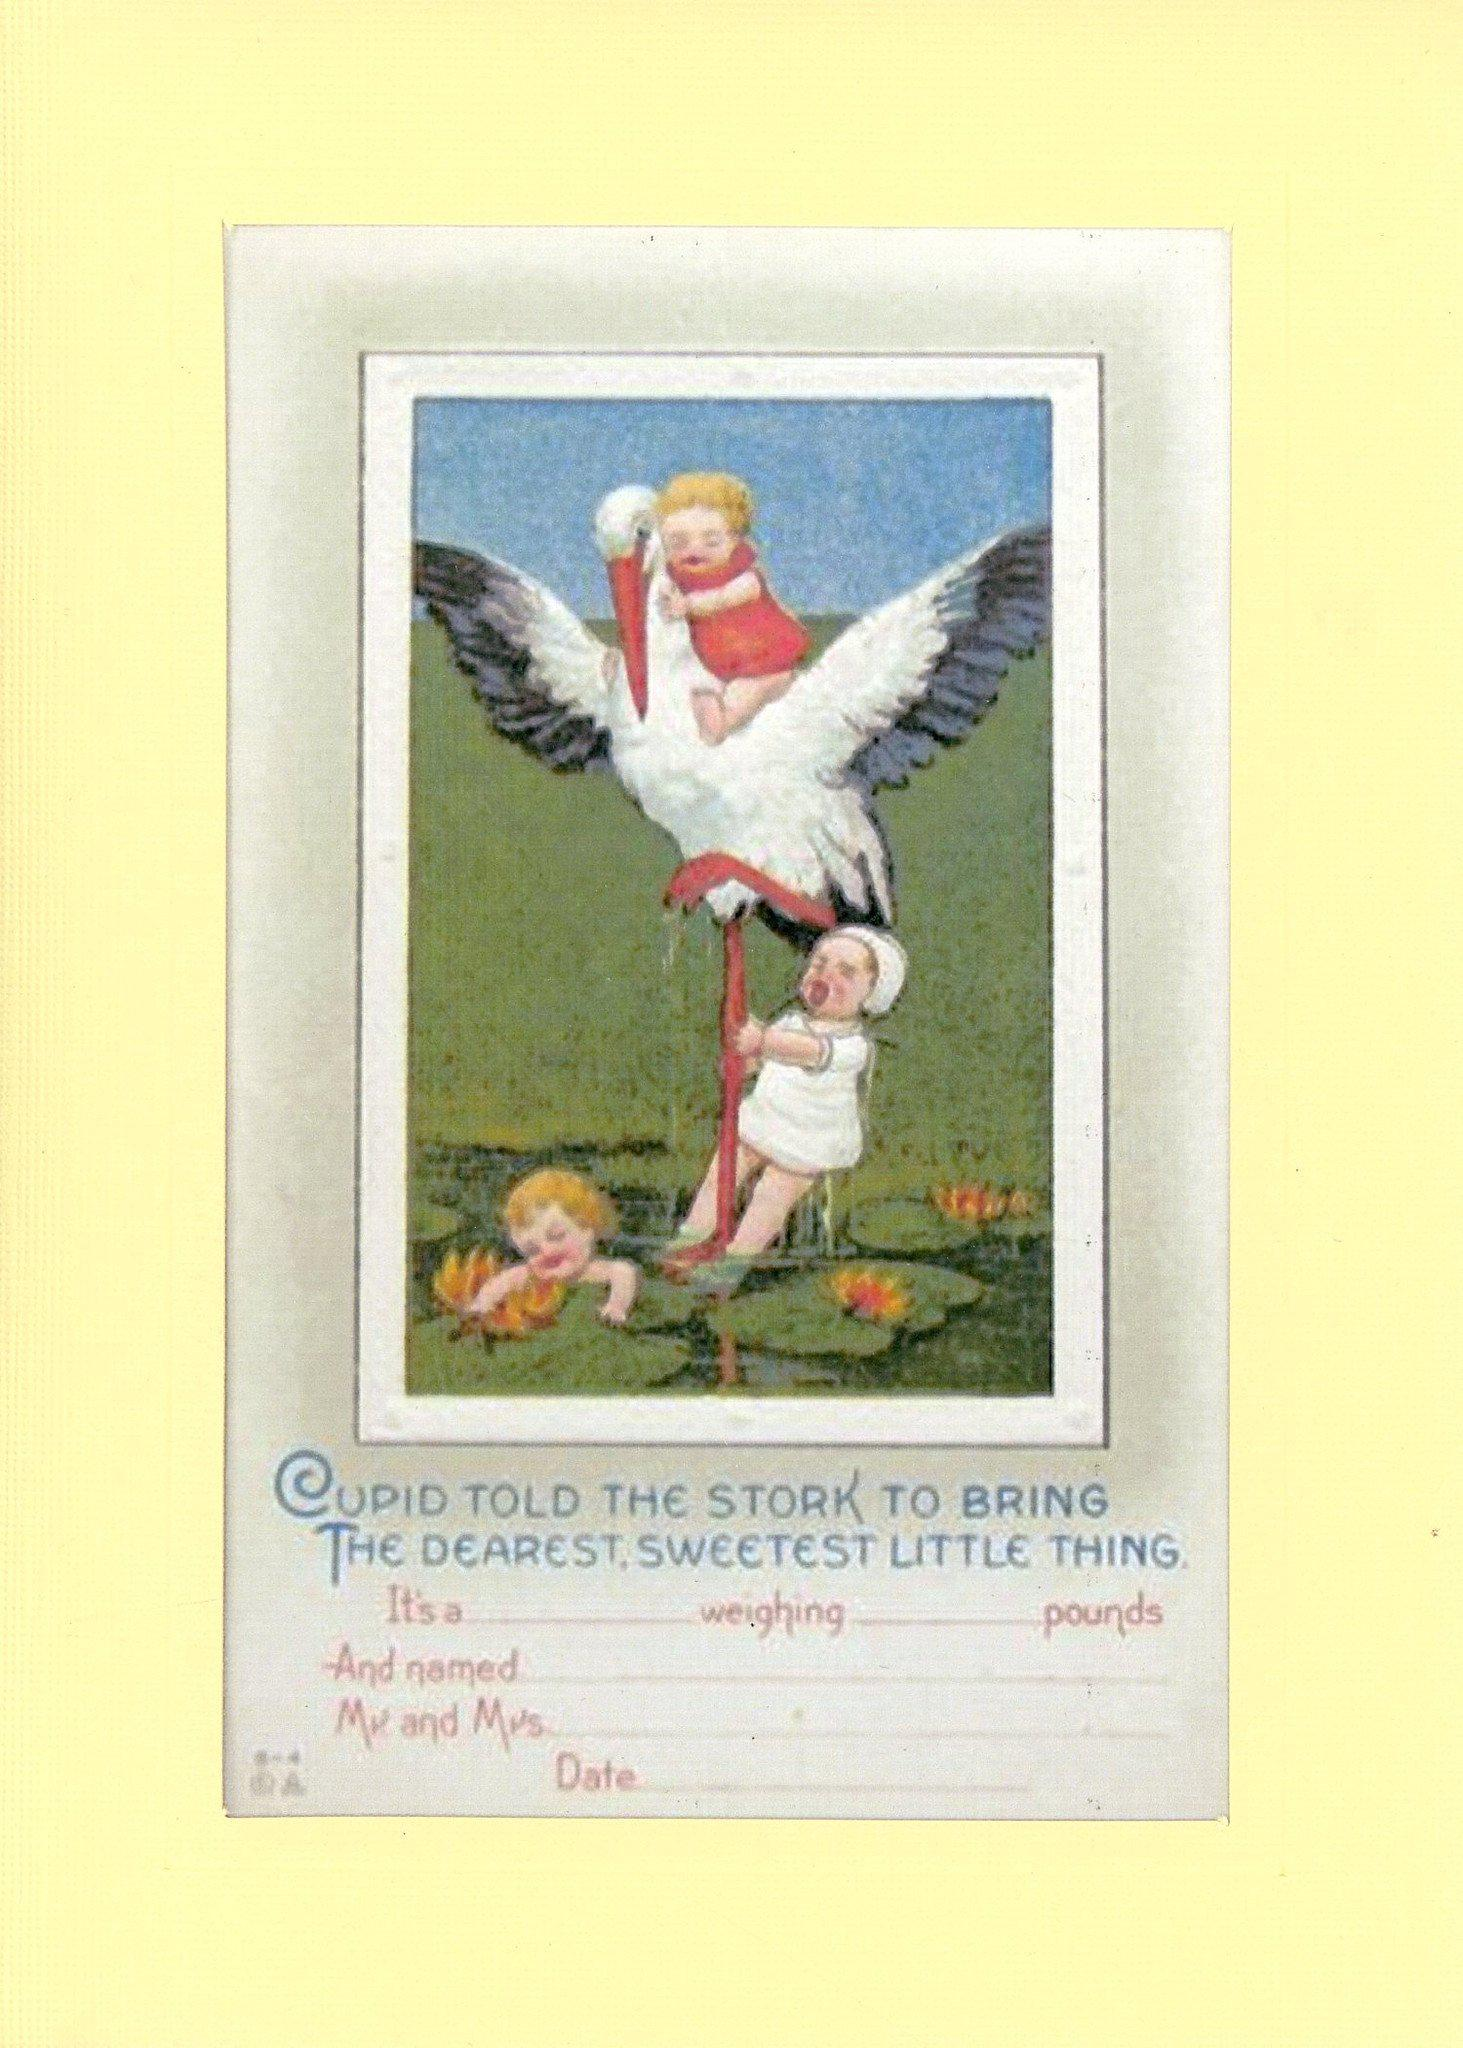 New Baby Announcement-Greetings from the Past-Plymouth Cards